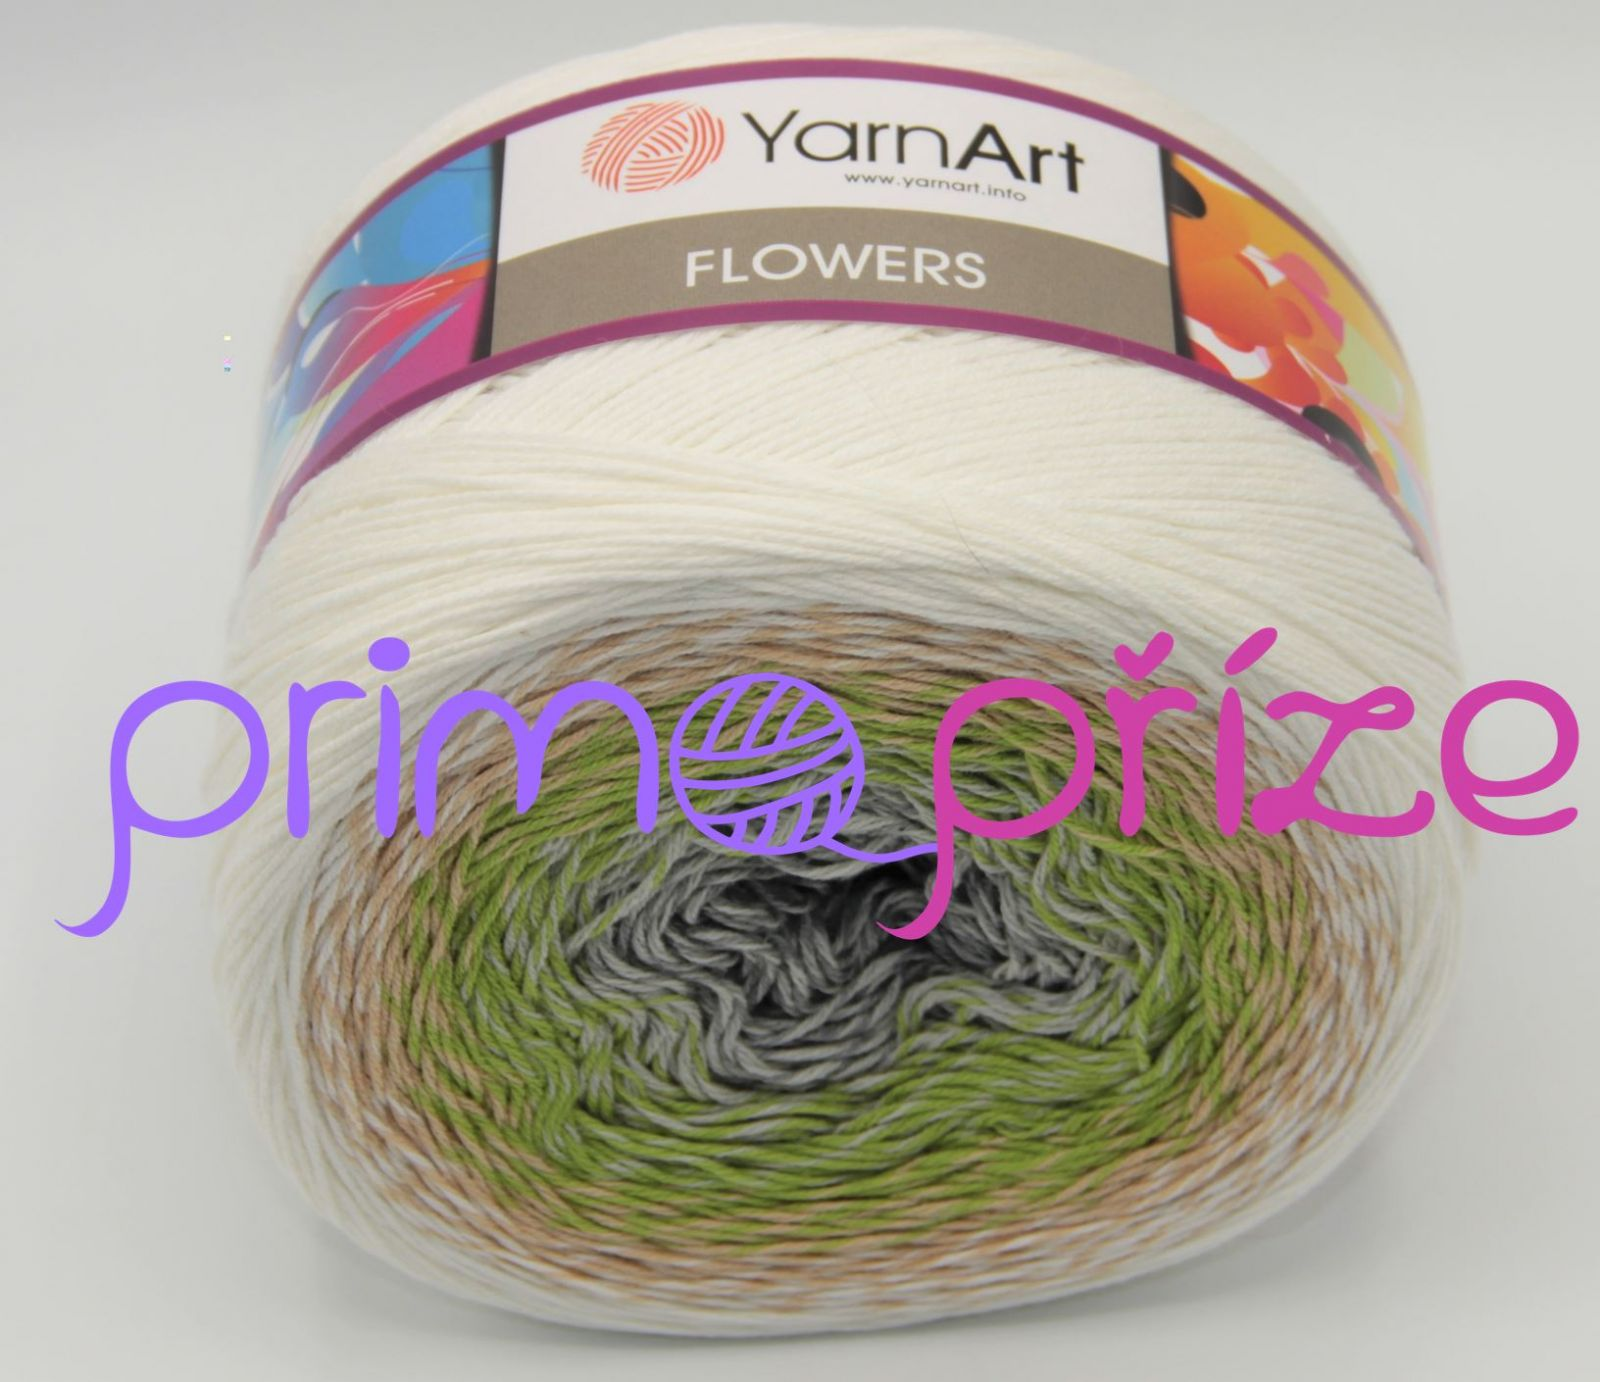 YarnArt Flowers 274 YARN ART